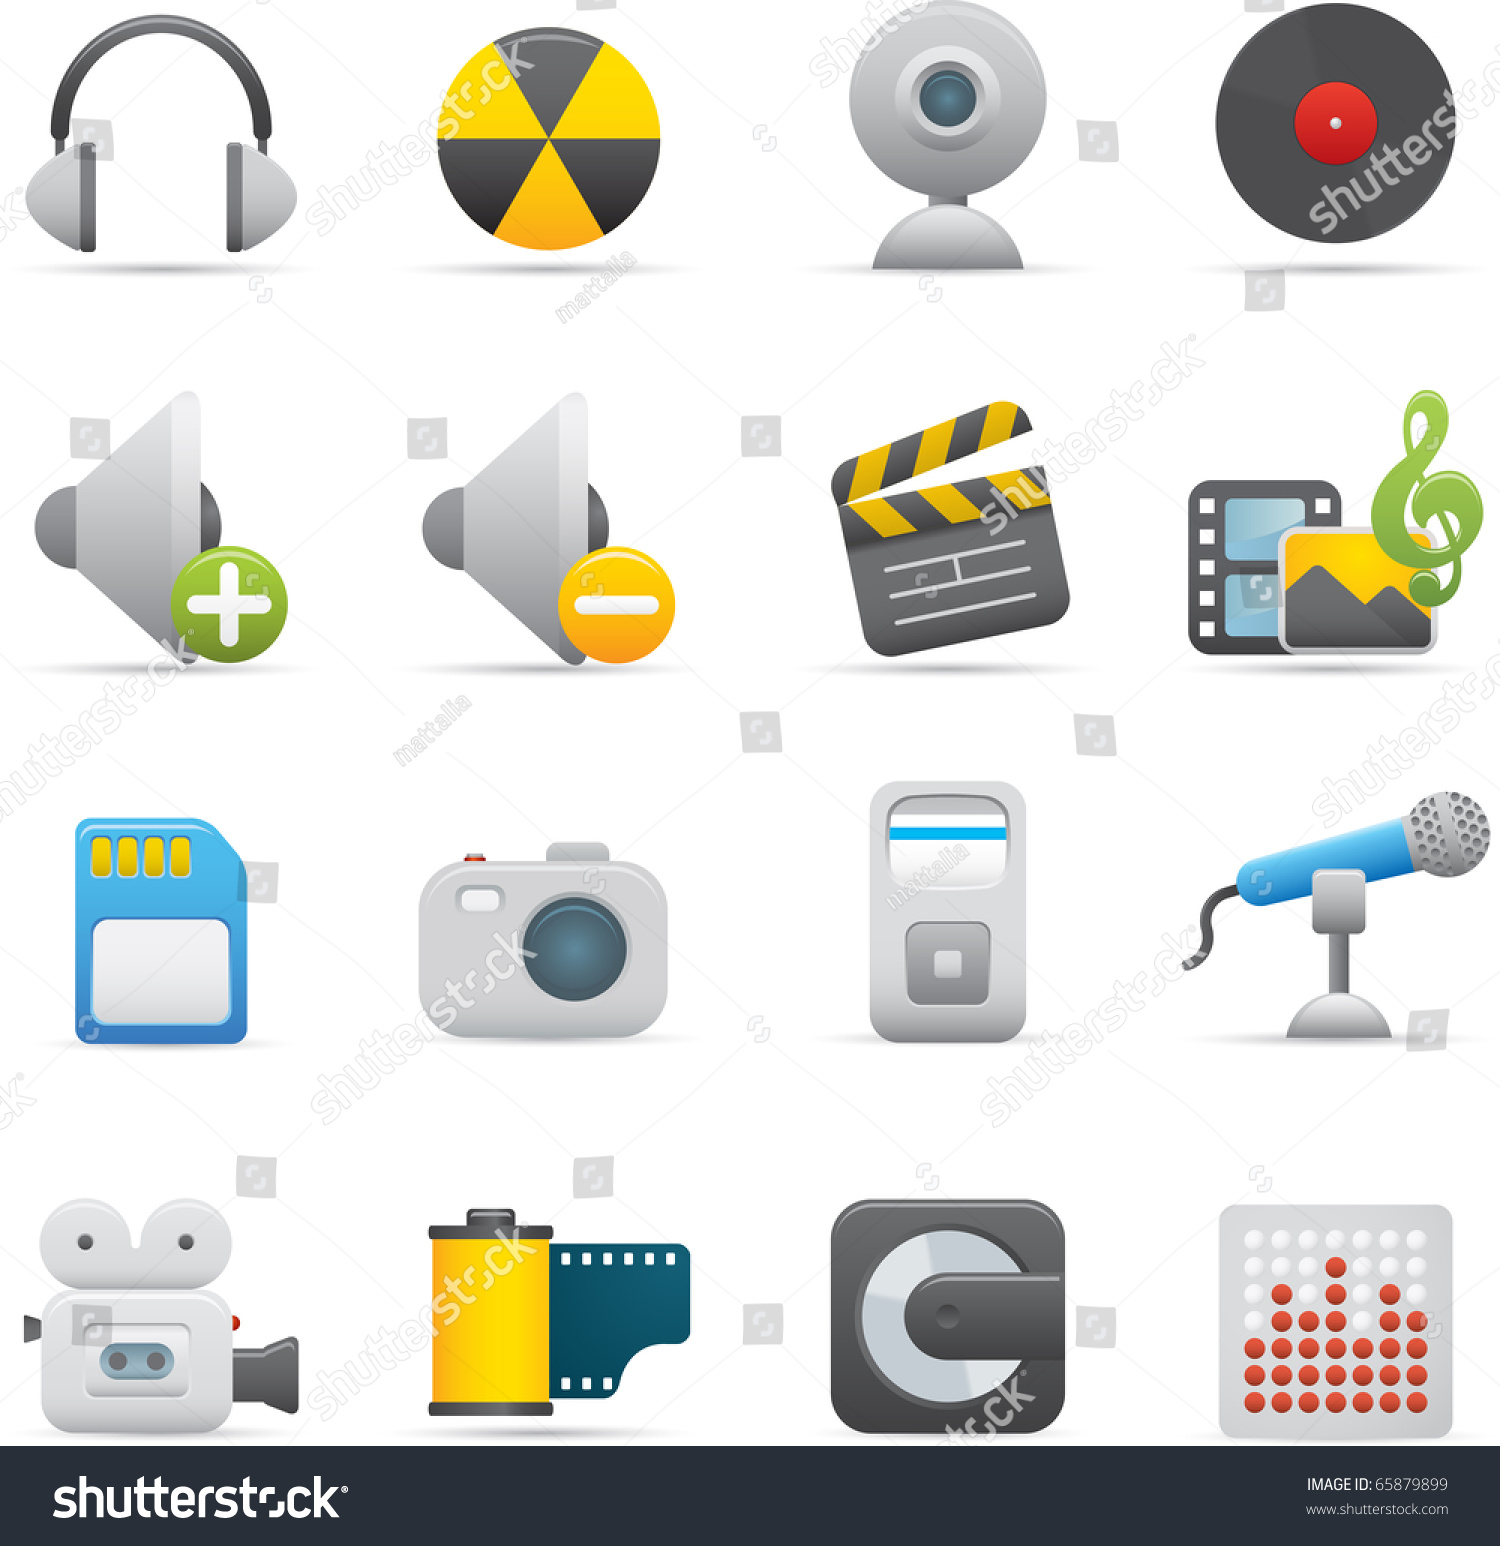 Colors for professional website - 08 Multimedia Icons Professional Vector Set For Your Website Application Or Presentation The